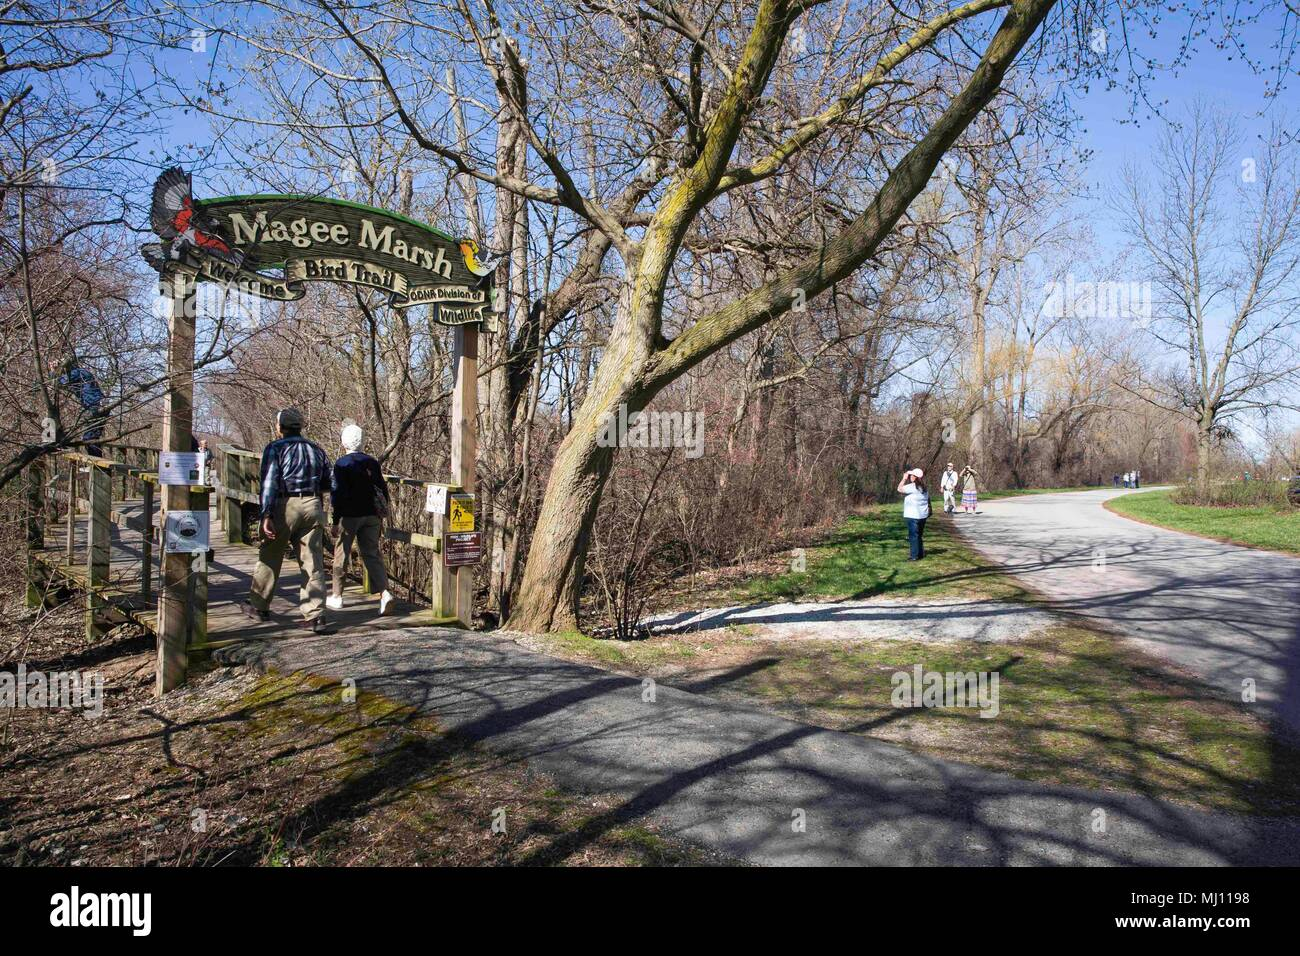 MAGEE MARSH, OAK HARBOR OHIO, May1, 2018: Early birders walking the Magee Marsh boardwalk, 'The Warbler Capital of the World!', in preparation for the - Stock Image